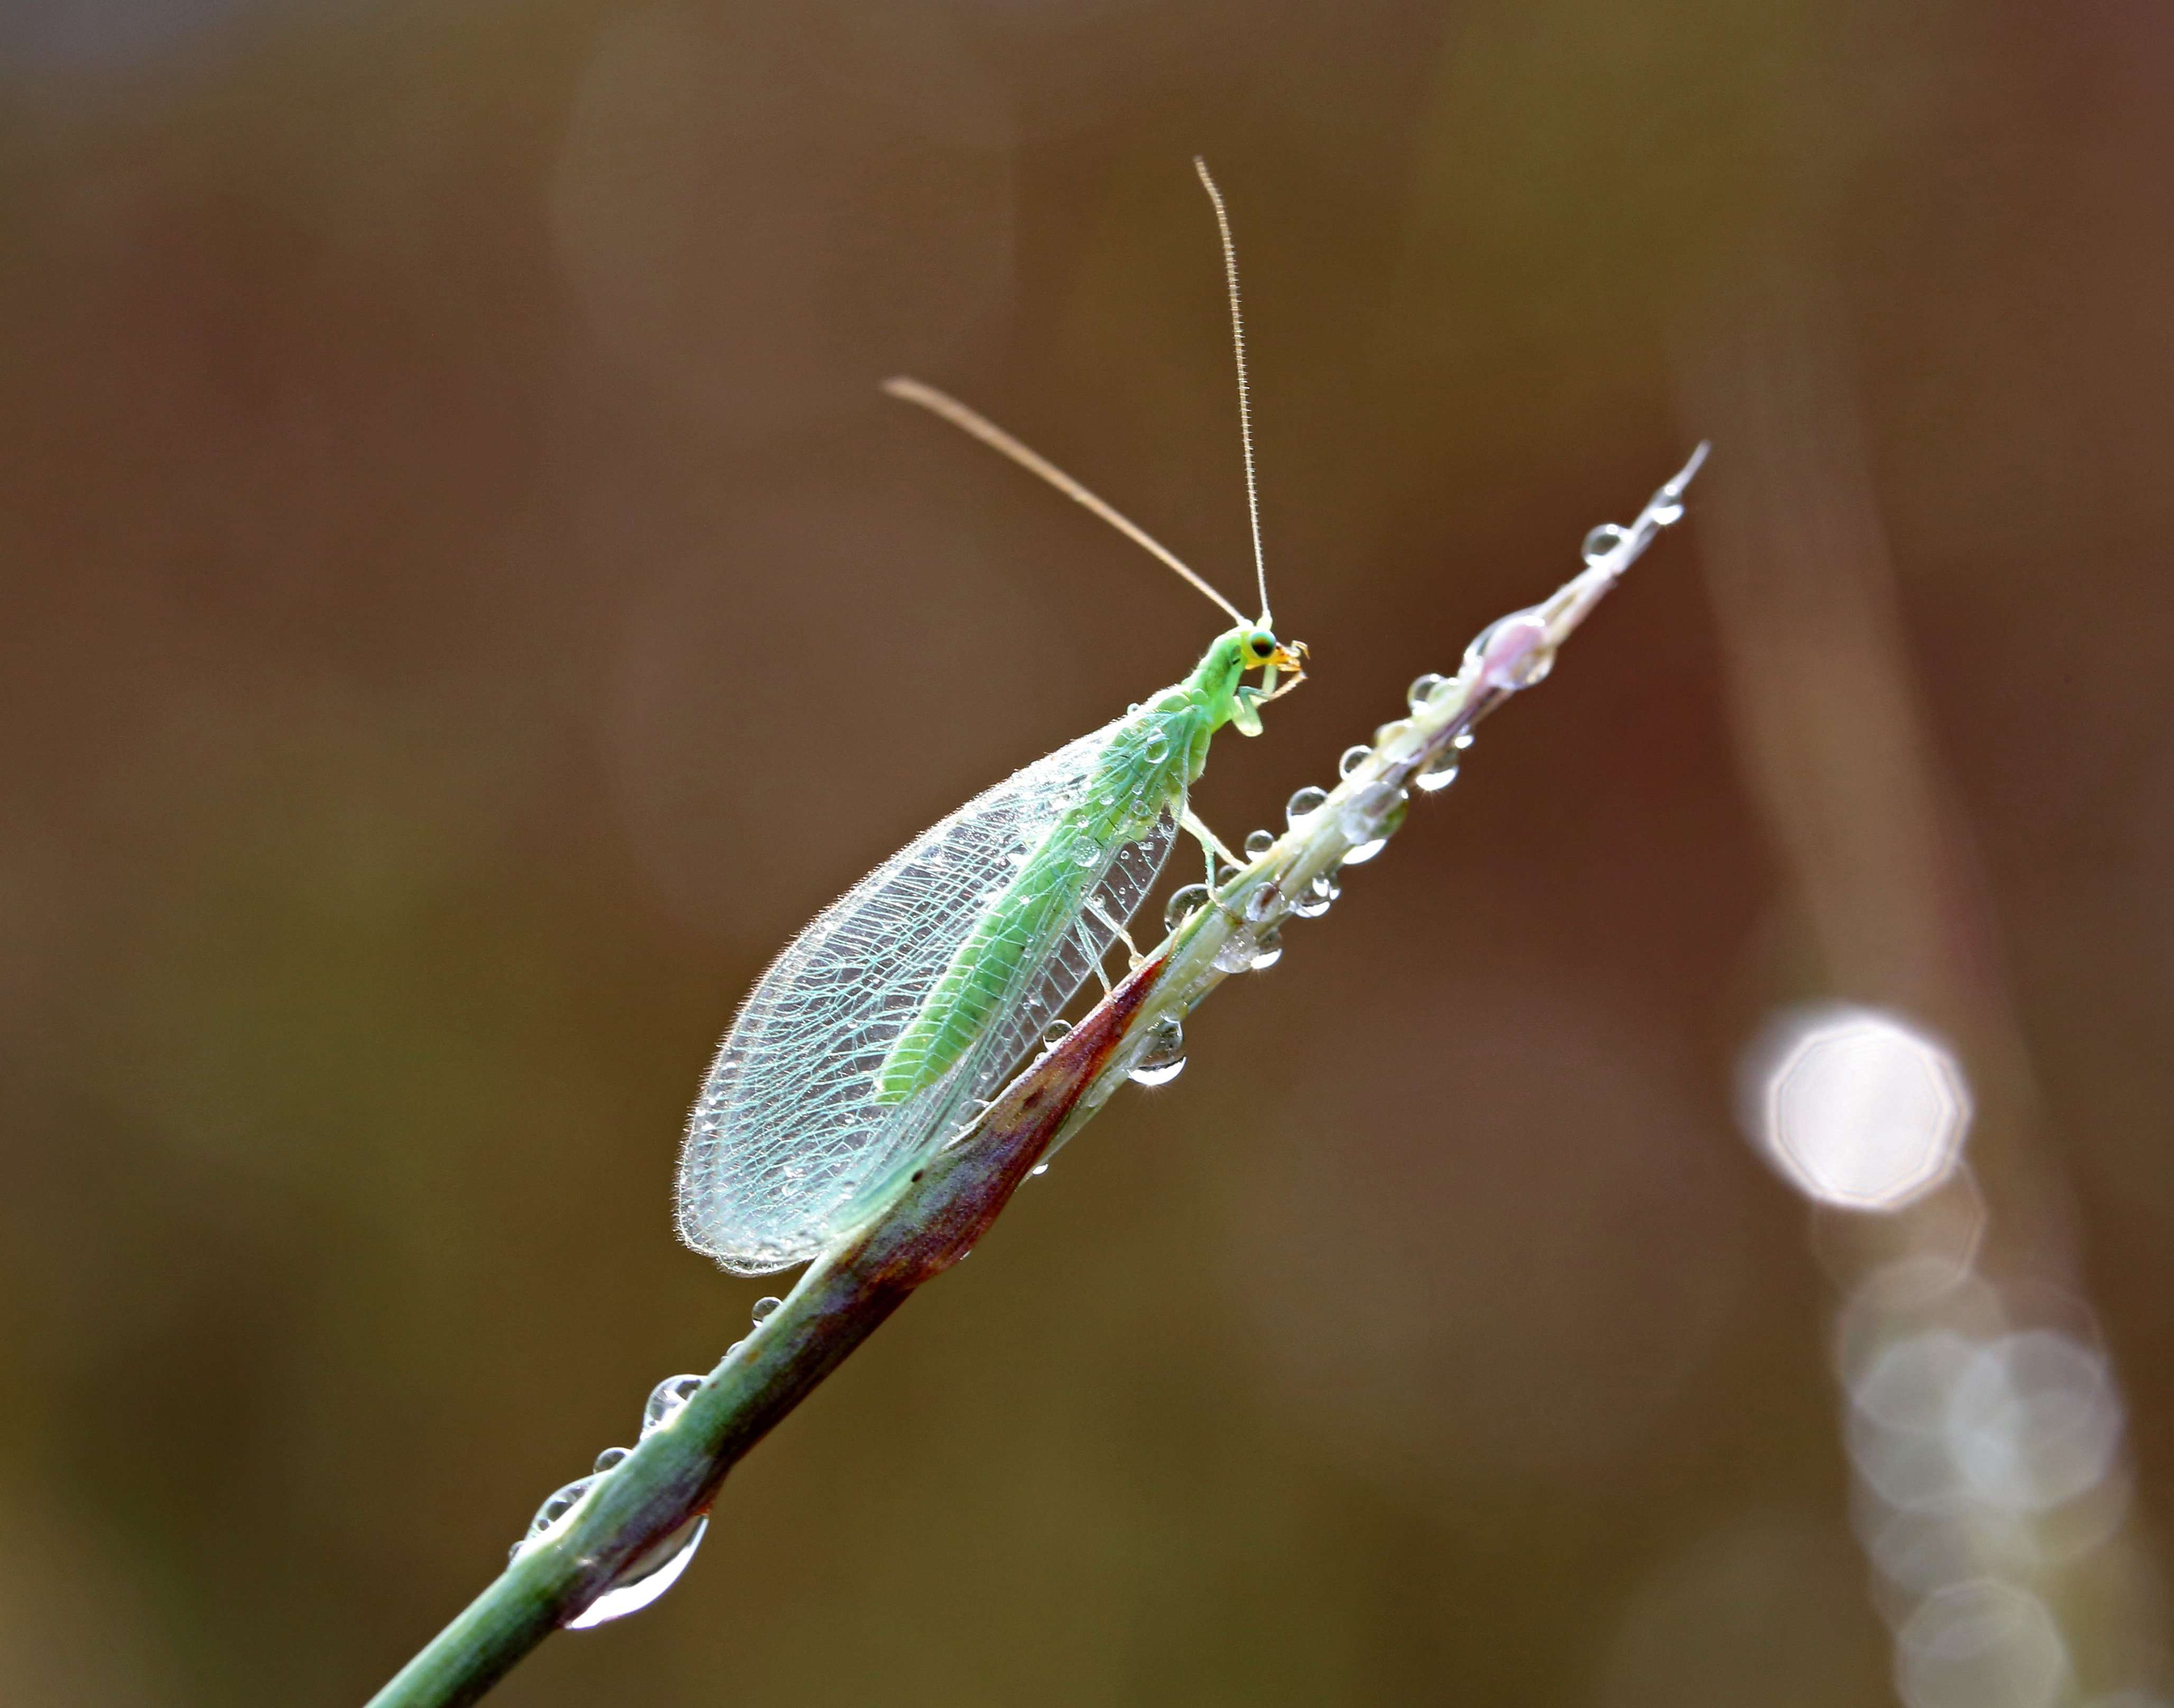 Green Lacewing on Little Bluestem - Lacewings are helpers in the garden